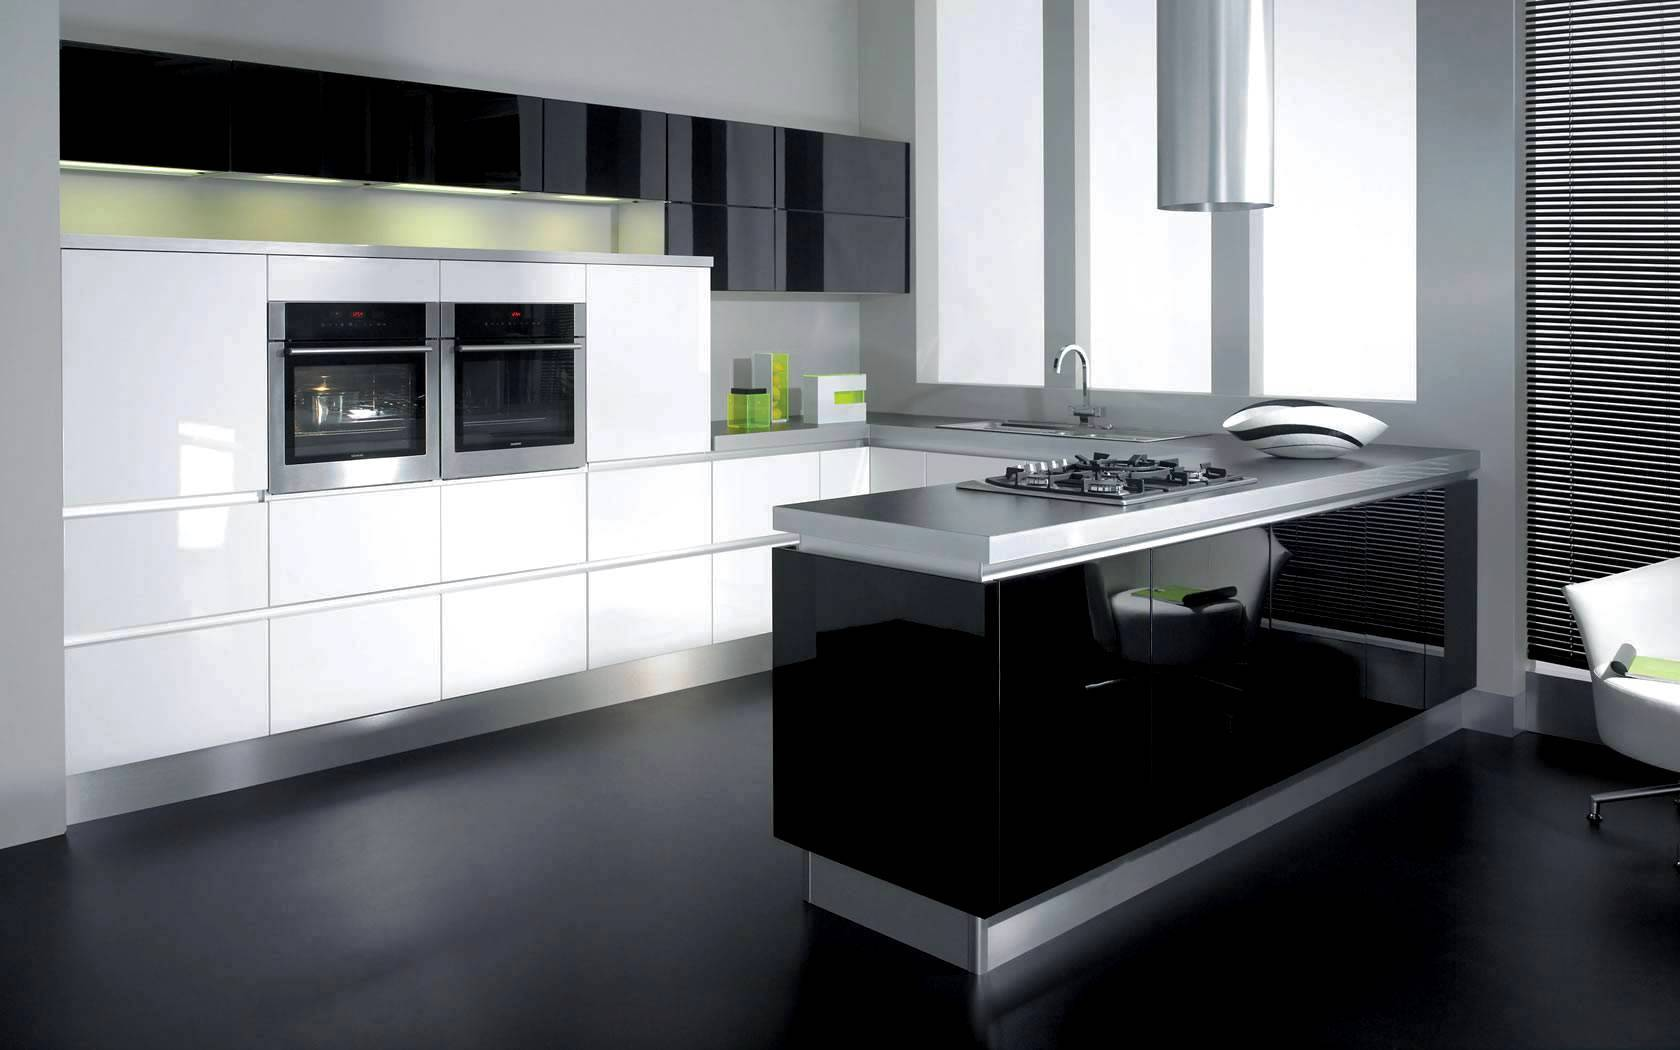 Home Spaces Intelligent Solutions Modular Kitchens In Hyderabad